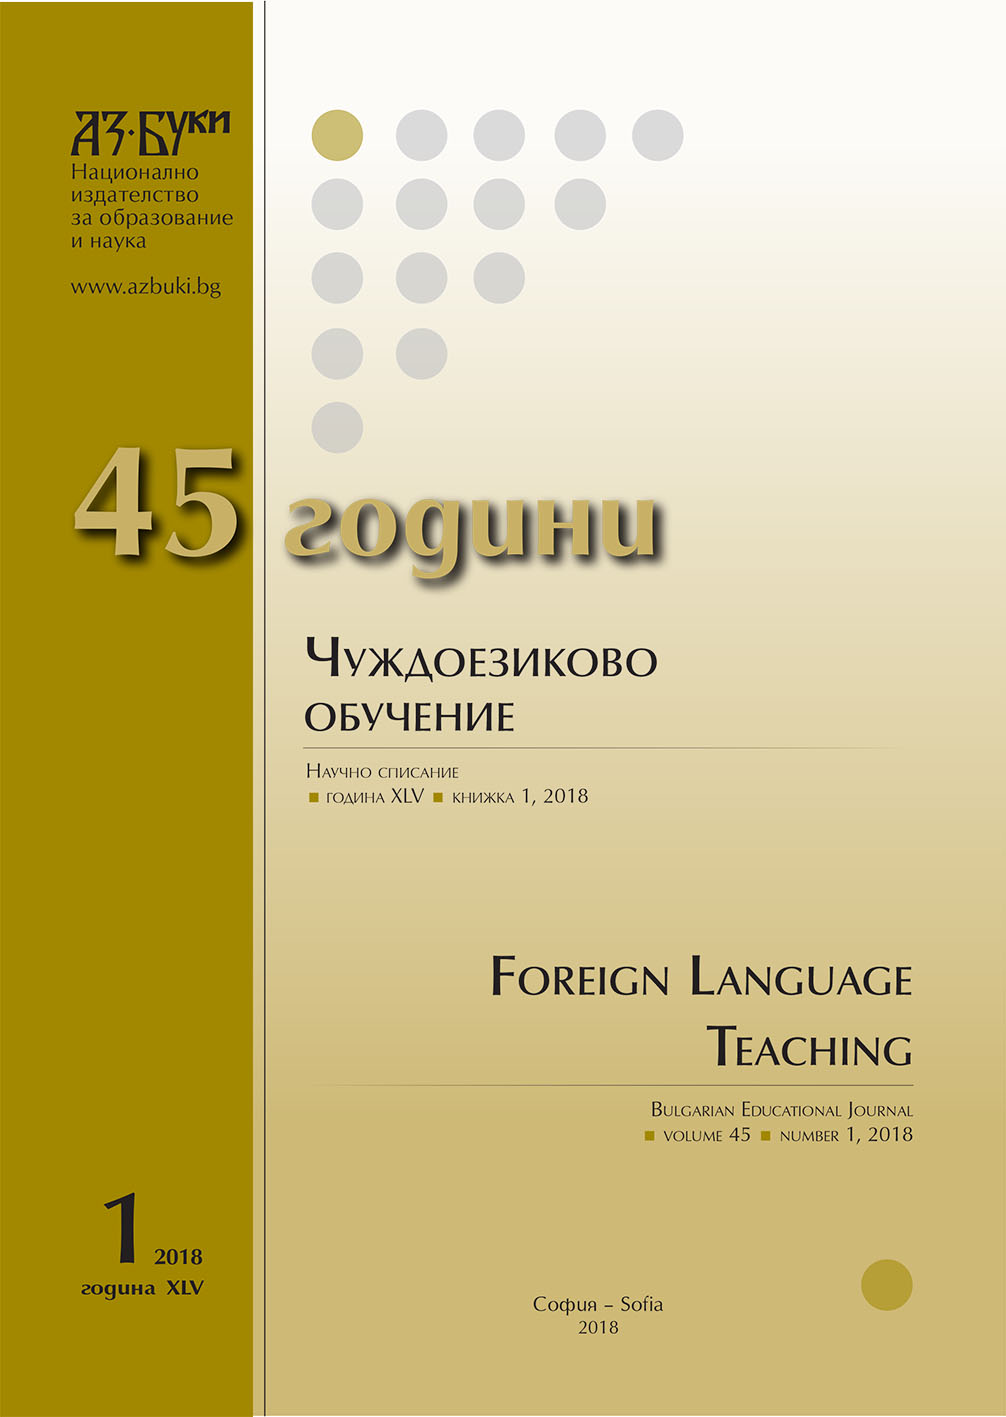 Suggestopedia: Core Meanings and Principles in the Scope of Foreign Language Learning Cover Image